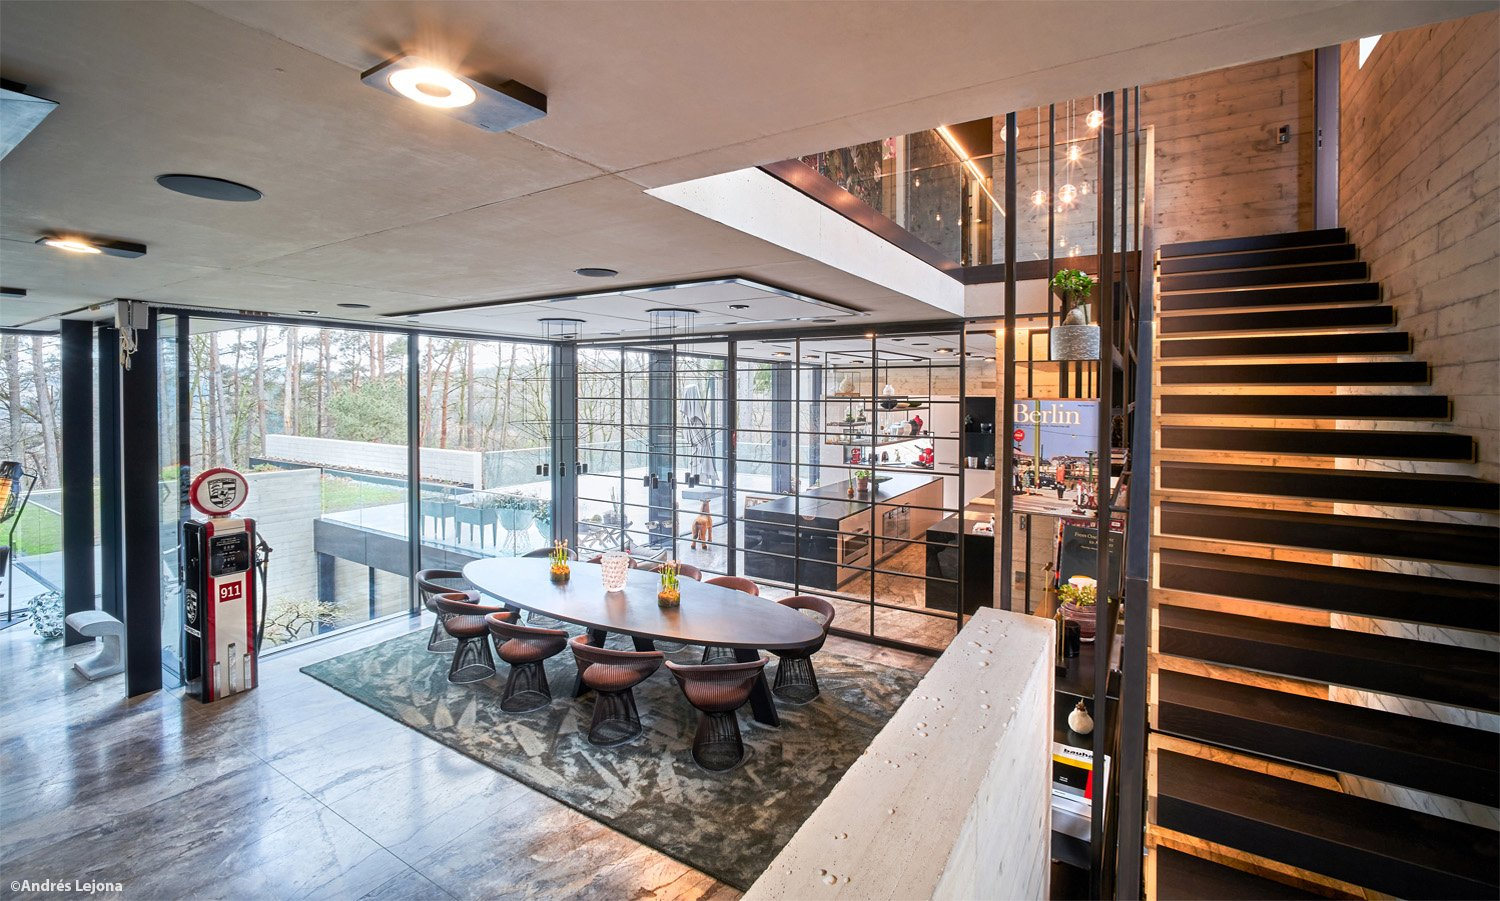 view of dining and kitchen areas Andrés Lejona